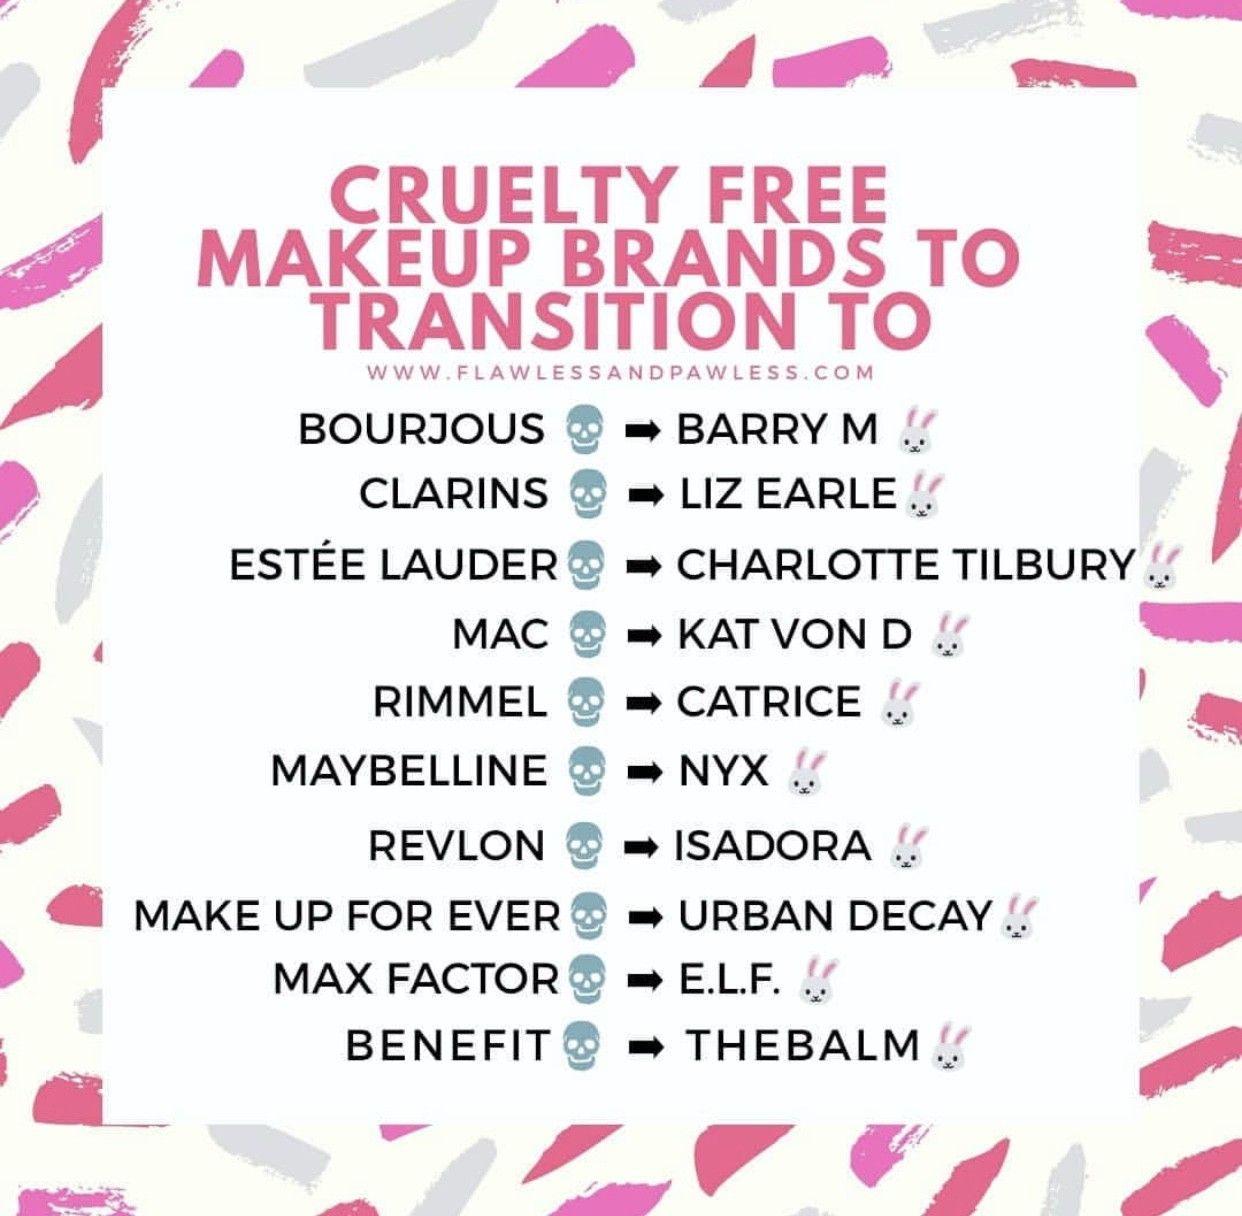 Pin by Leah H. Hong on Cruelty Free Makeups Cruelty free